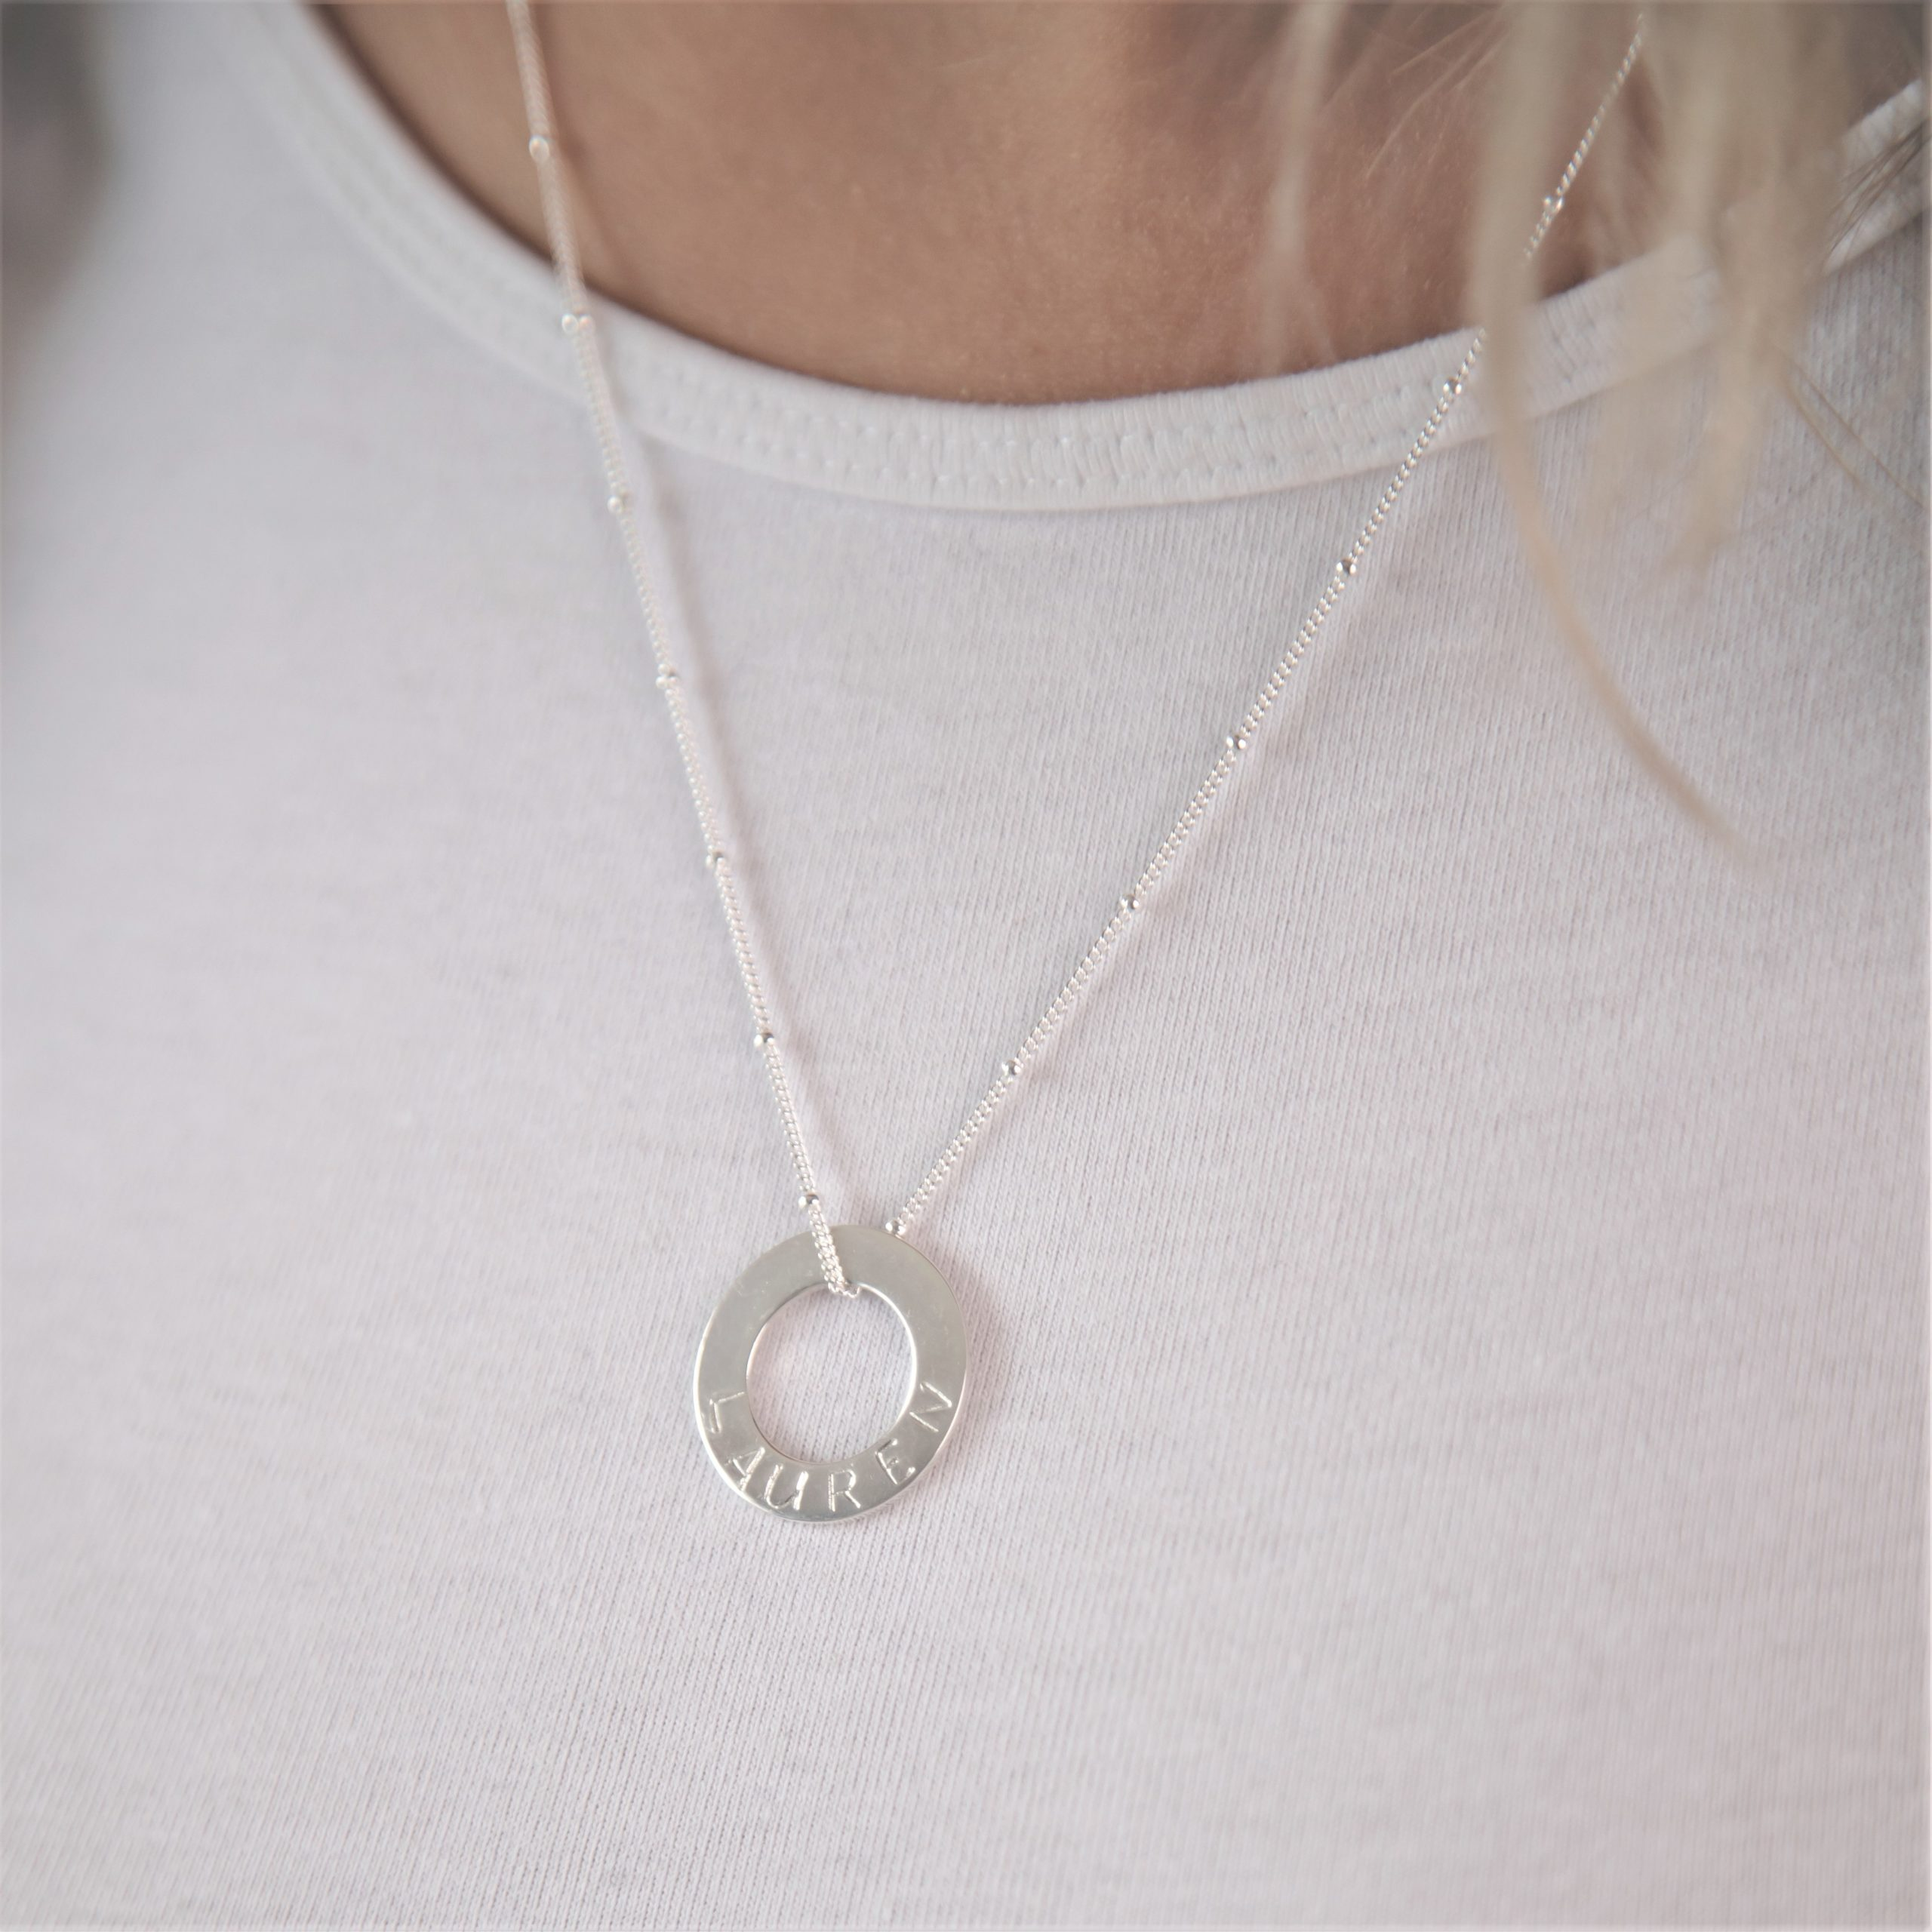 sterling silver necklace with stamped washer disc